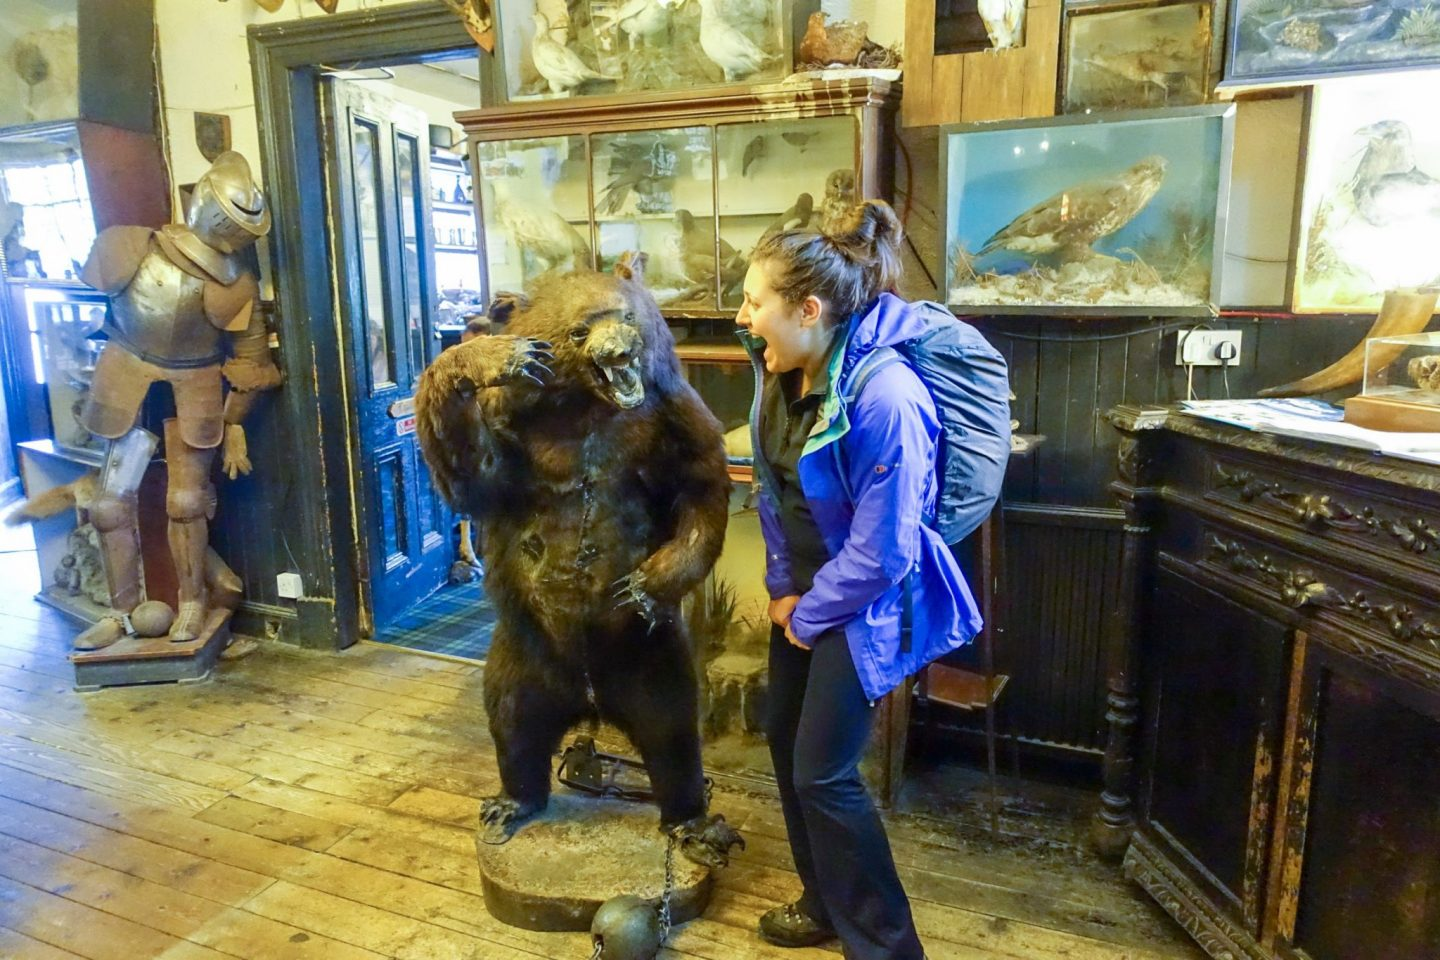 Nell in the Drovers Inn, posing next to a stuffed bear pretending to look scared, walking the West Highland Way